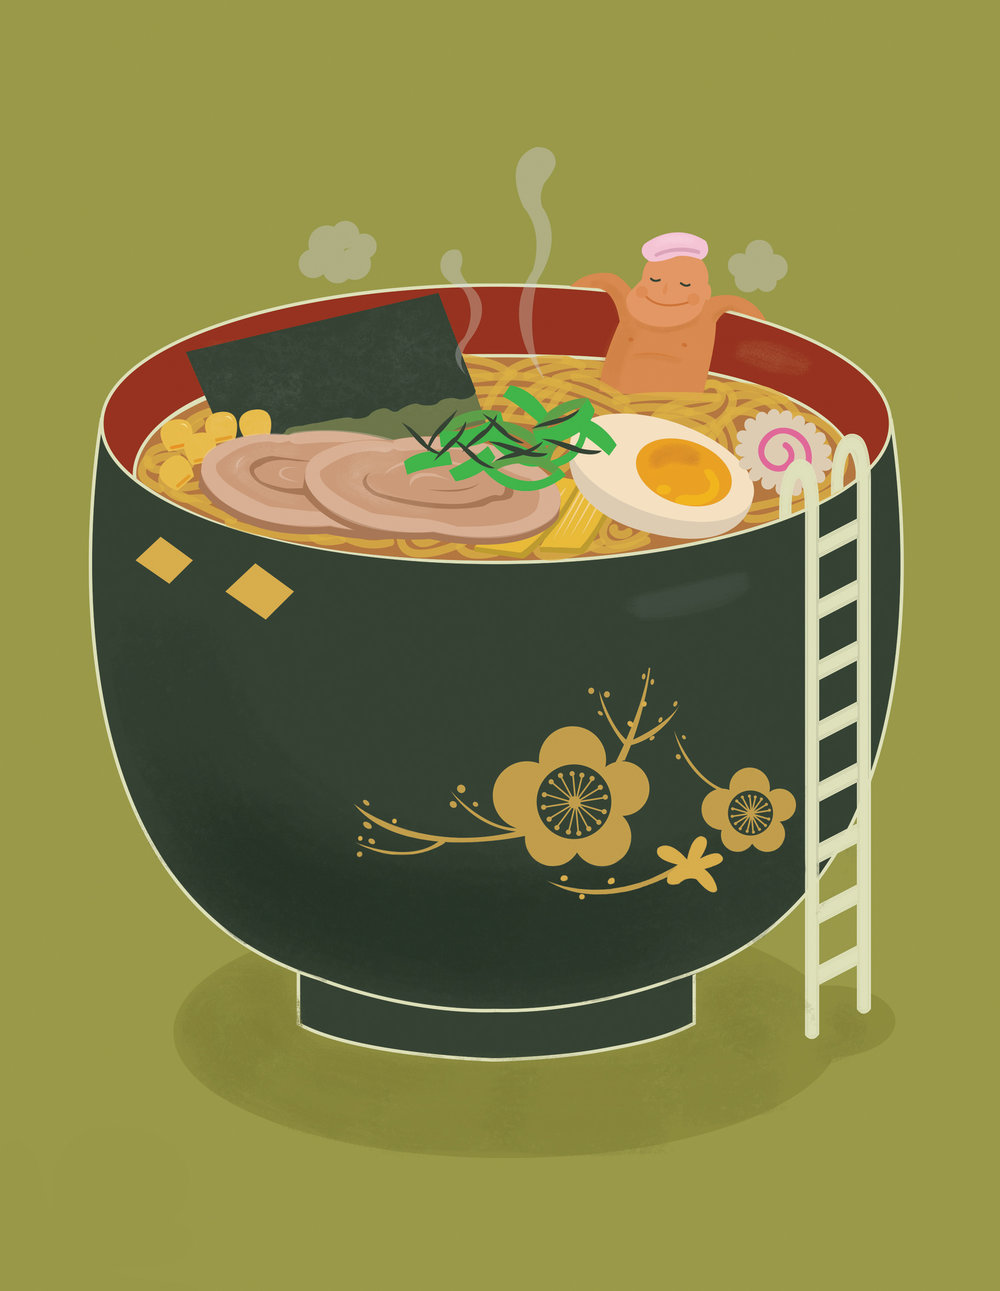 Ramen onsen vector illustration